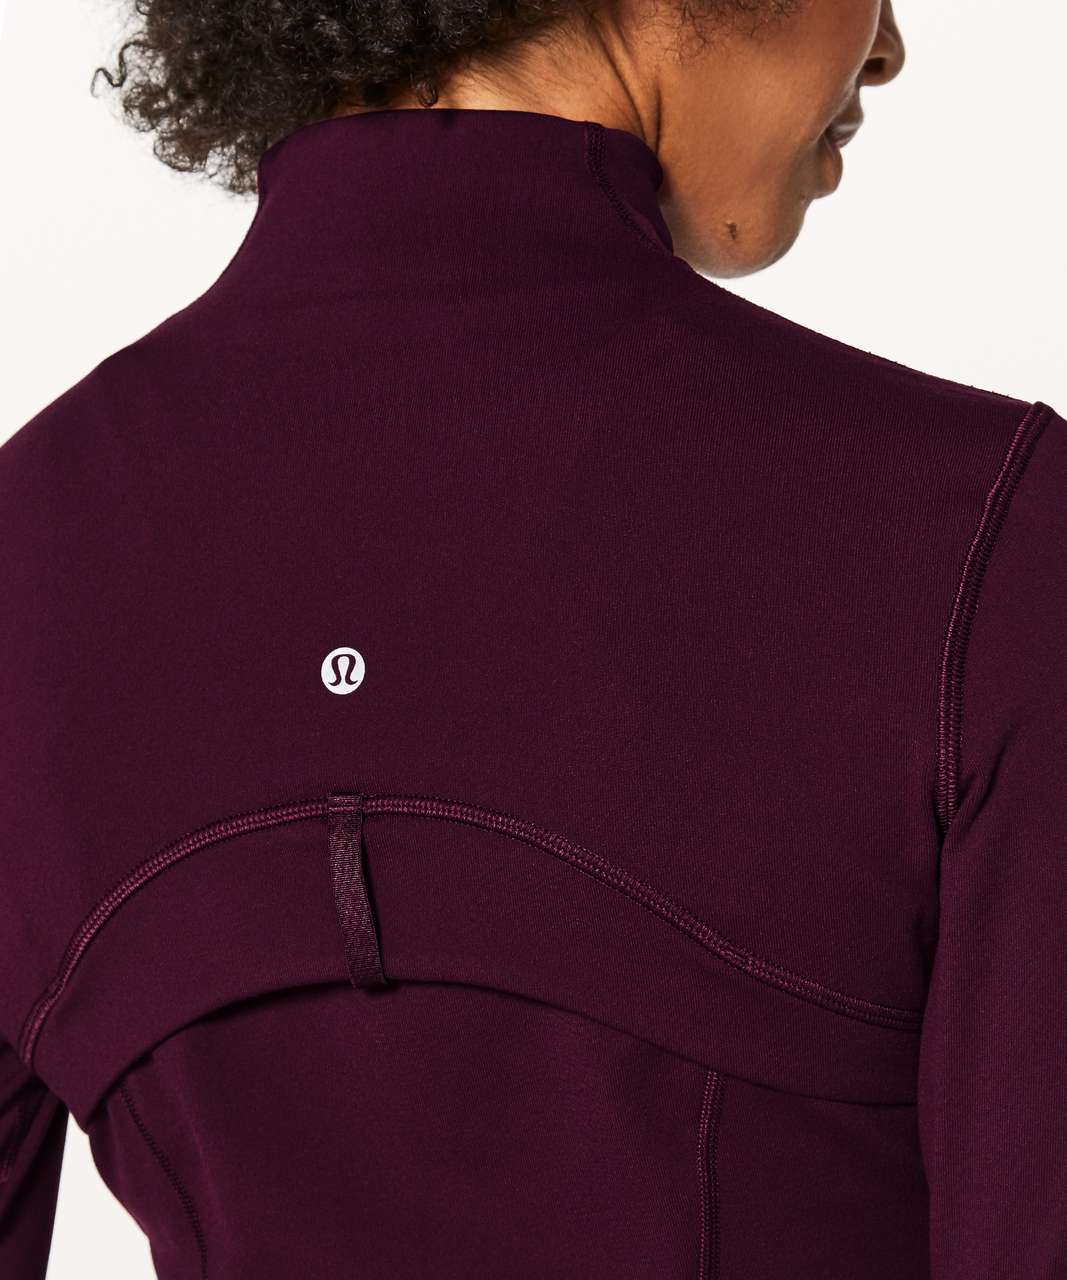 Lululemon Define Jacket - Dark Adobe (First Release)